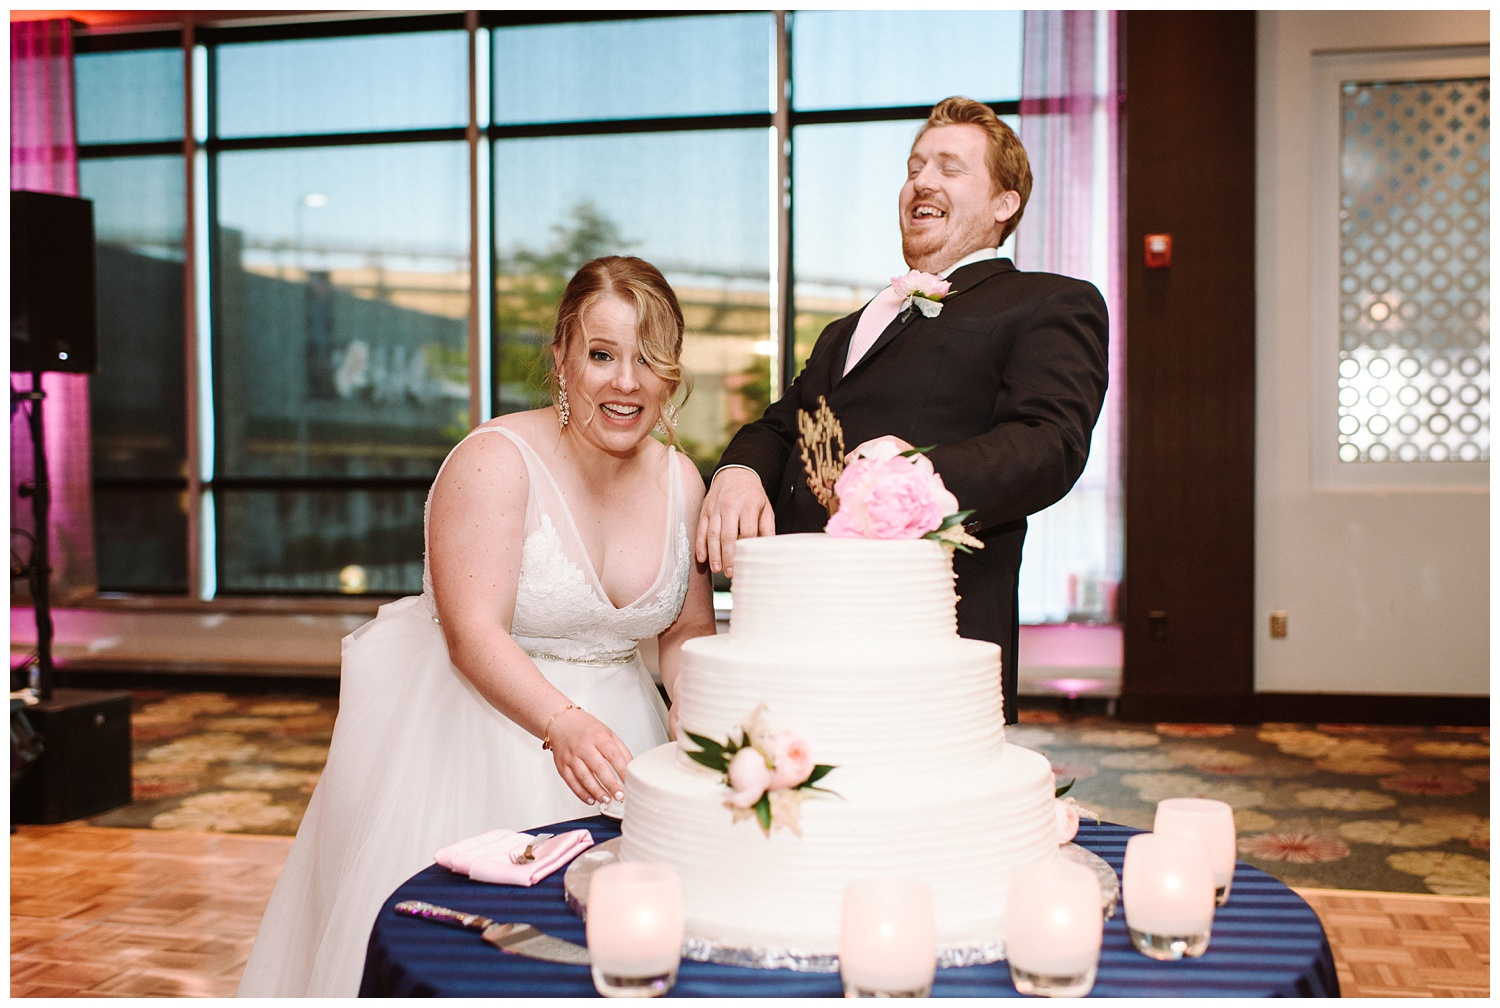 Renaissance Hotel Gillette Stadium Wedding Photographer104.jpg